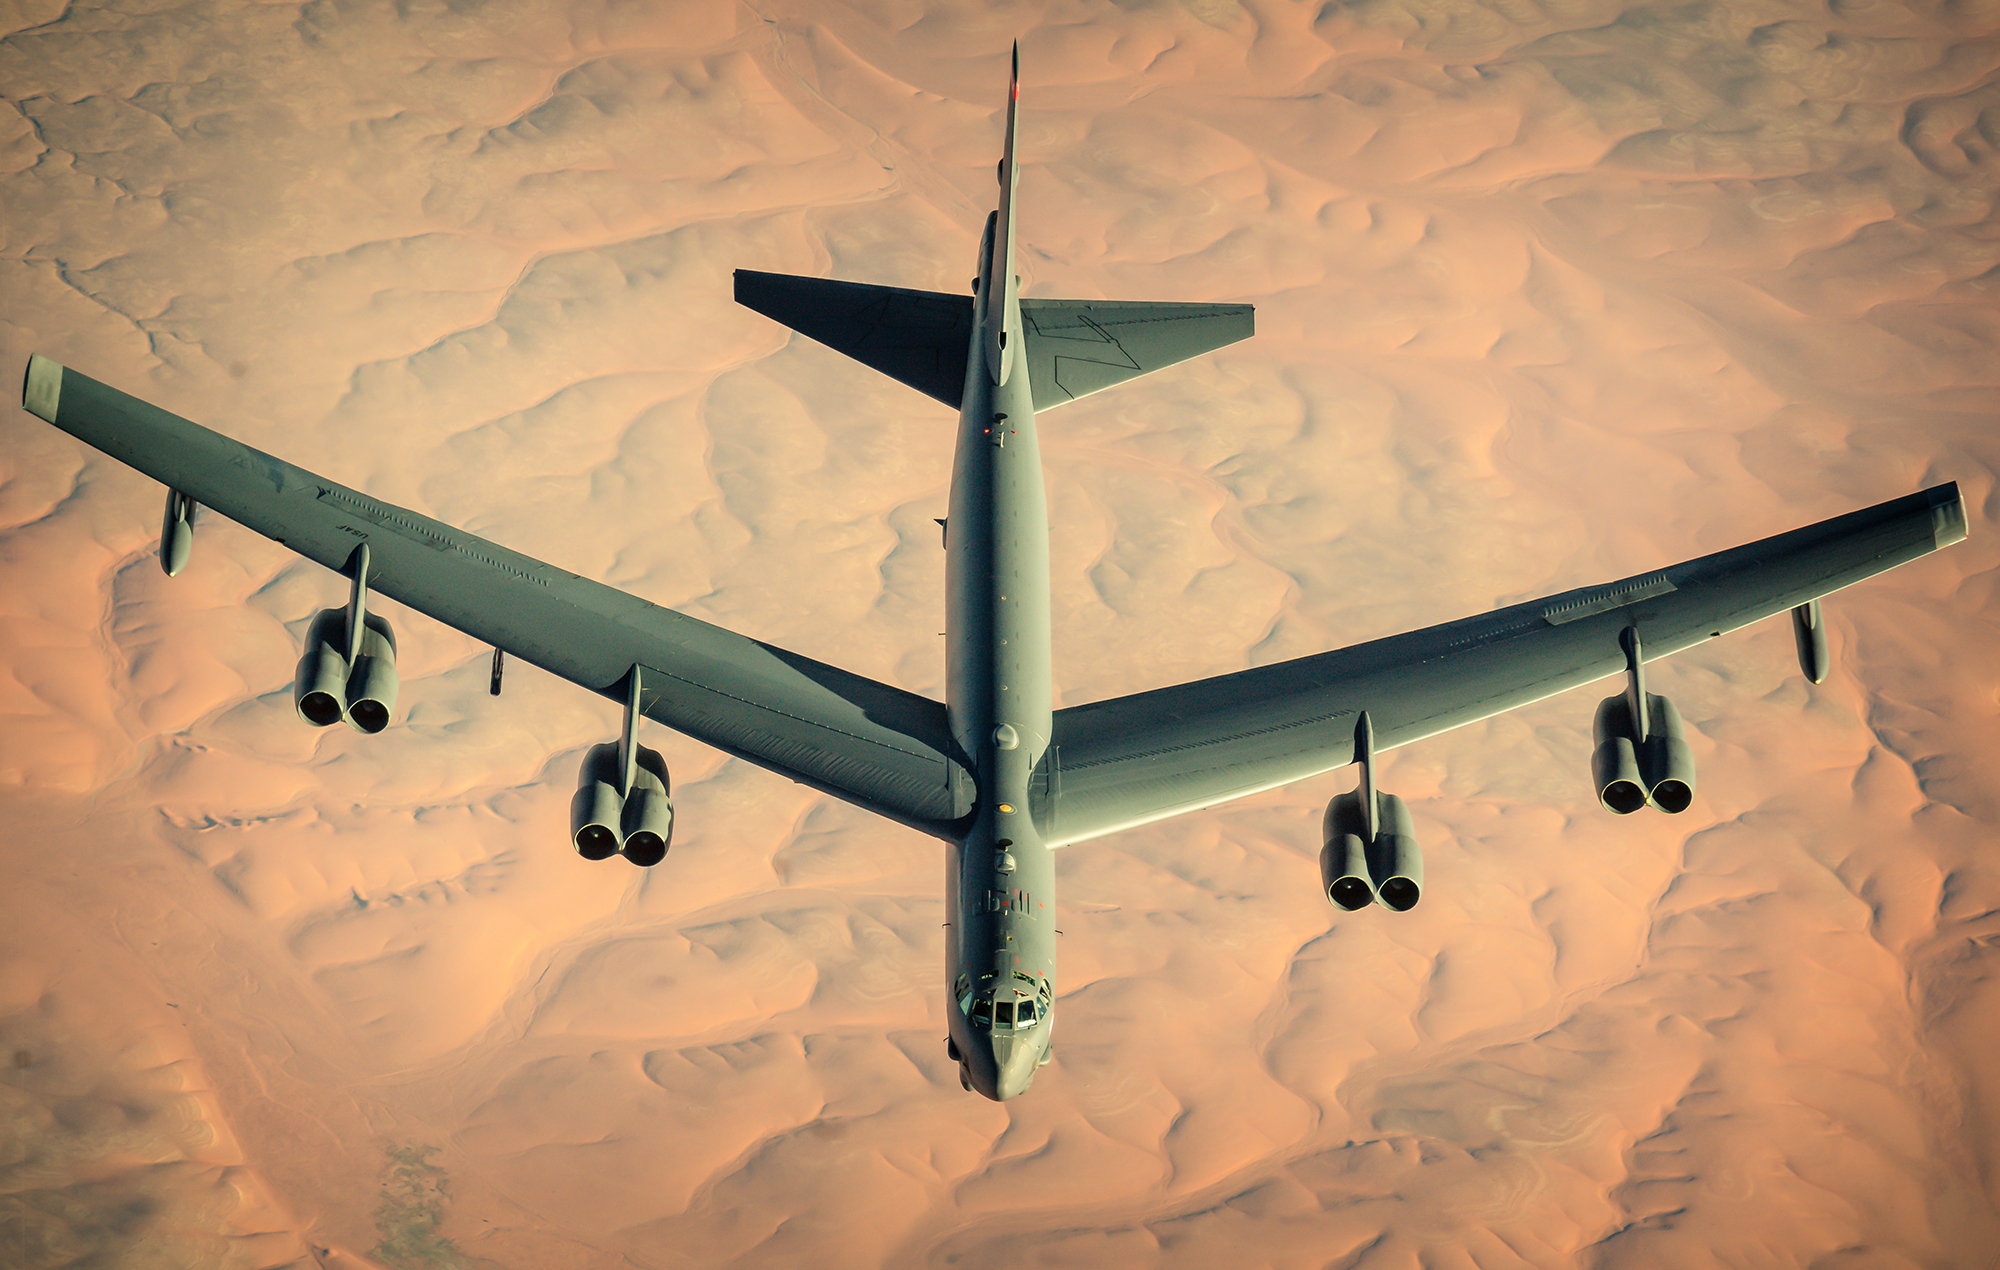 A U.S. Air Force B-52 Stratofortress departs after receiving fuel from a KC-135 Stratotanker during a multi-day Bomber Task Force mission over Southwest Asia, Dec. 10, 2020. (Staff Sgt. Trevor T. McBride/Air Force)